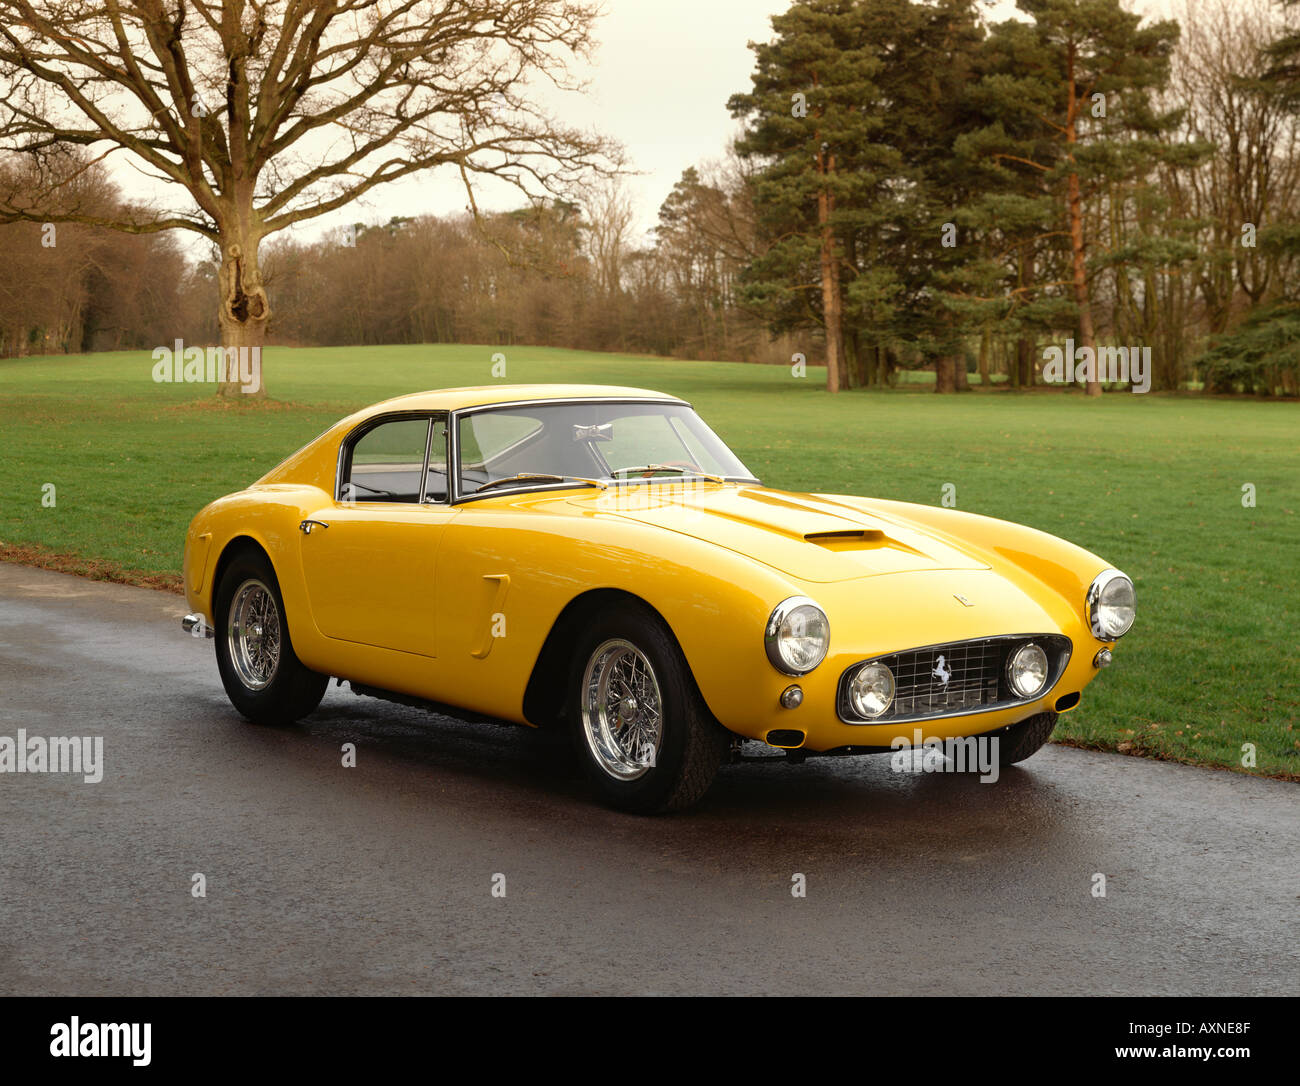 1960 Ferrari 250GT SWB competitzione 3 0 litre V12 Type 168 engine 280 bhp top speed 167 mph Country of origin Italy - Stock Image